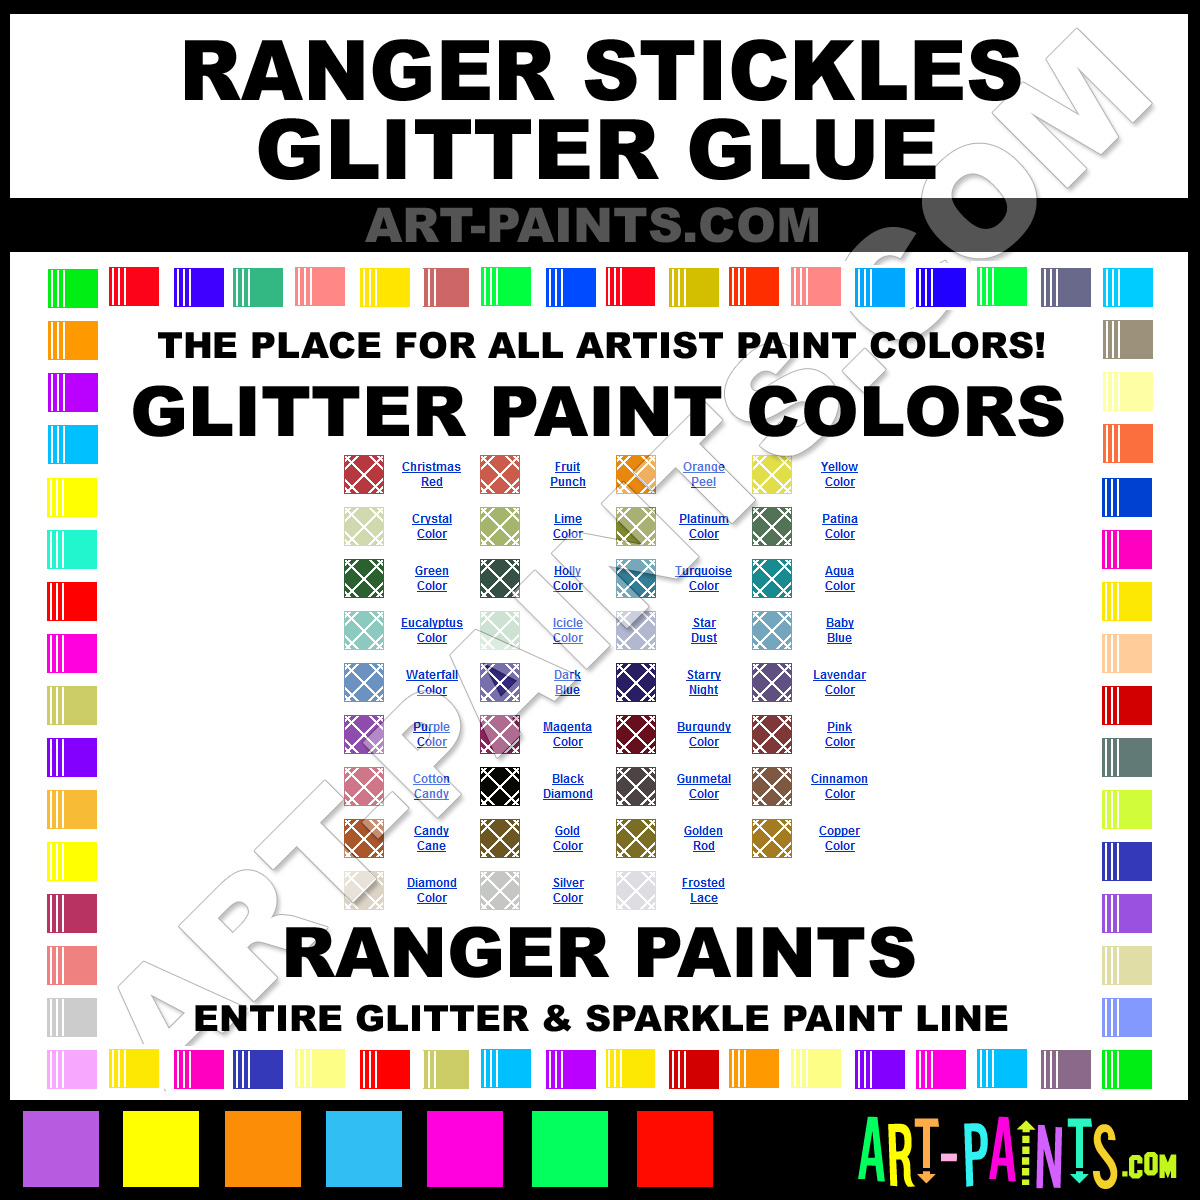 Glitter Glue And Paint Color Inspiration: Ranger Stickles Glitter Glue Glitter Paint Colors